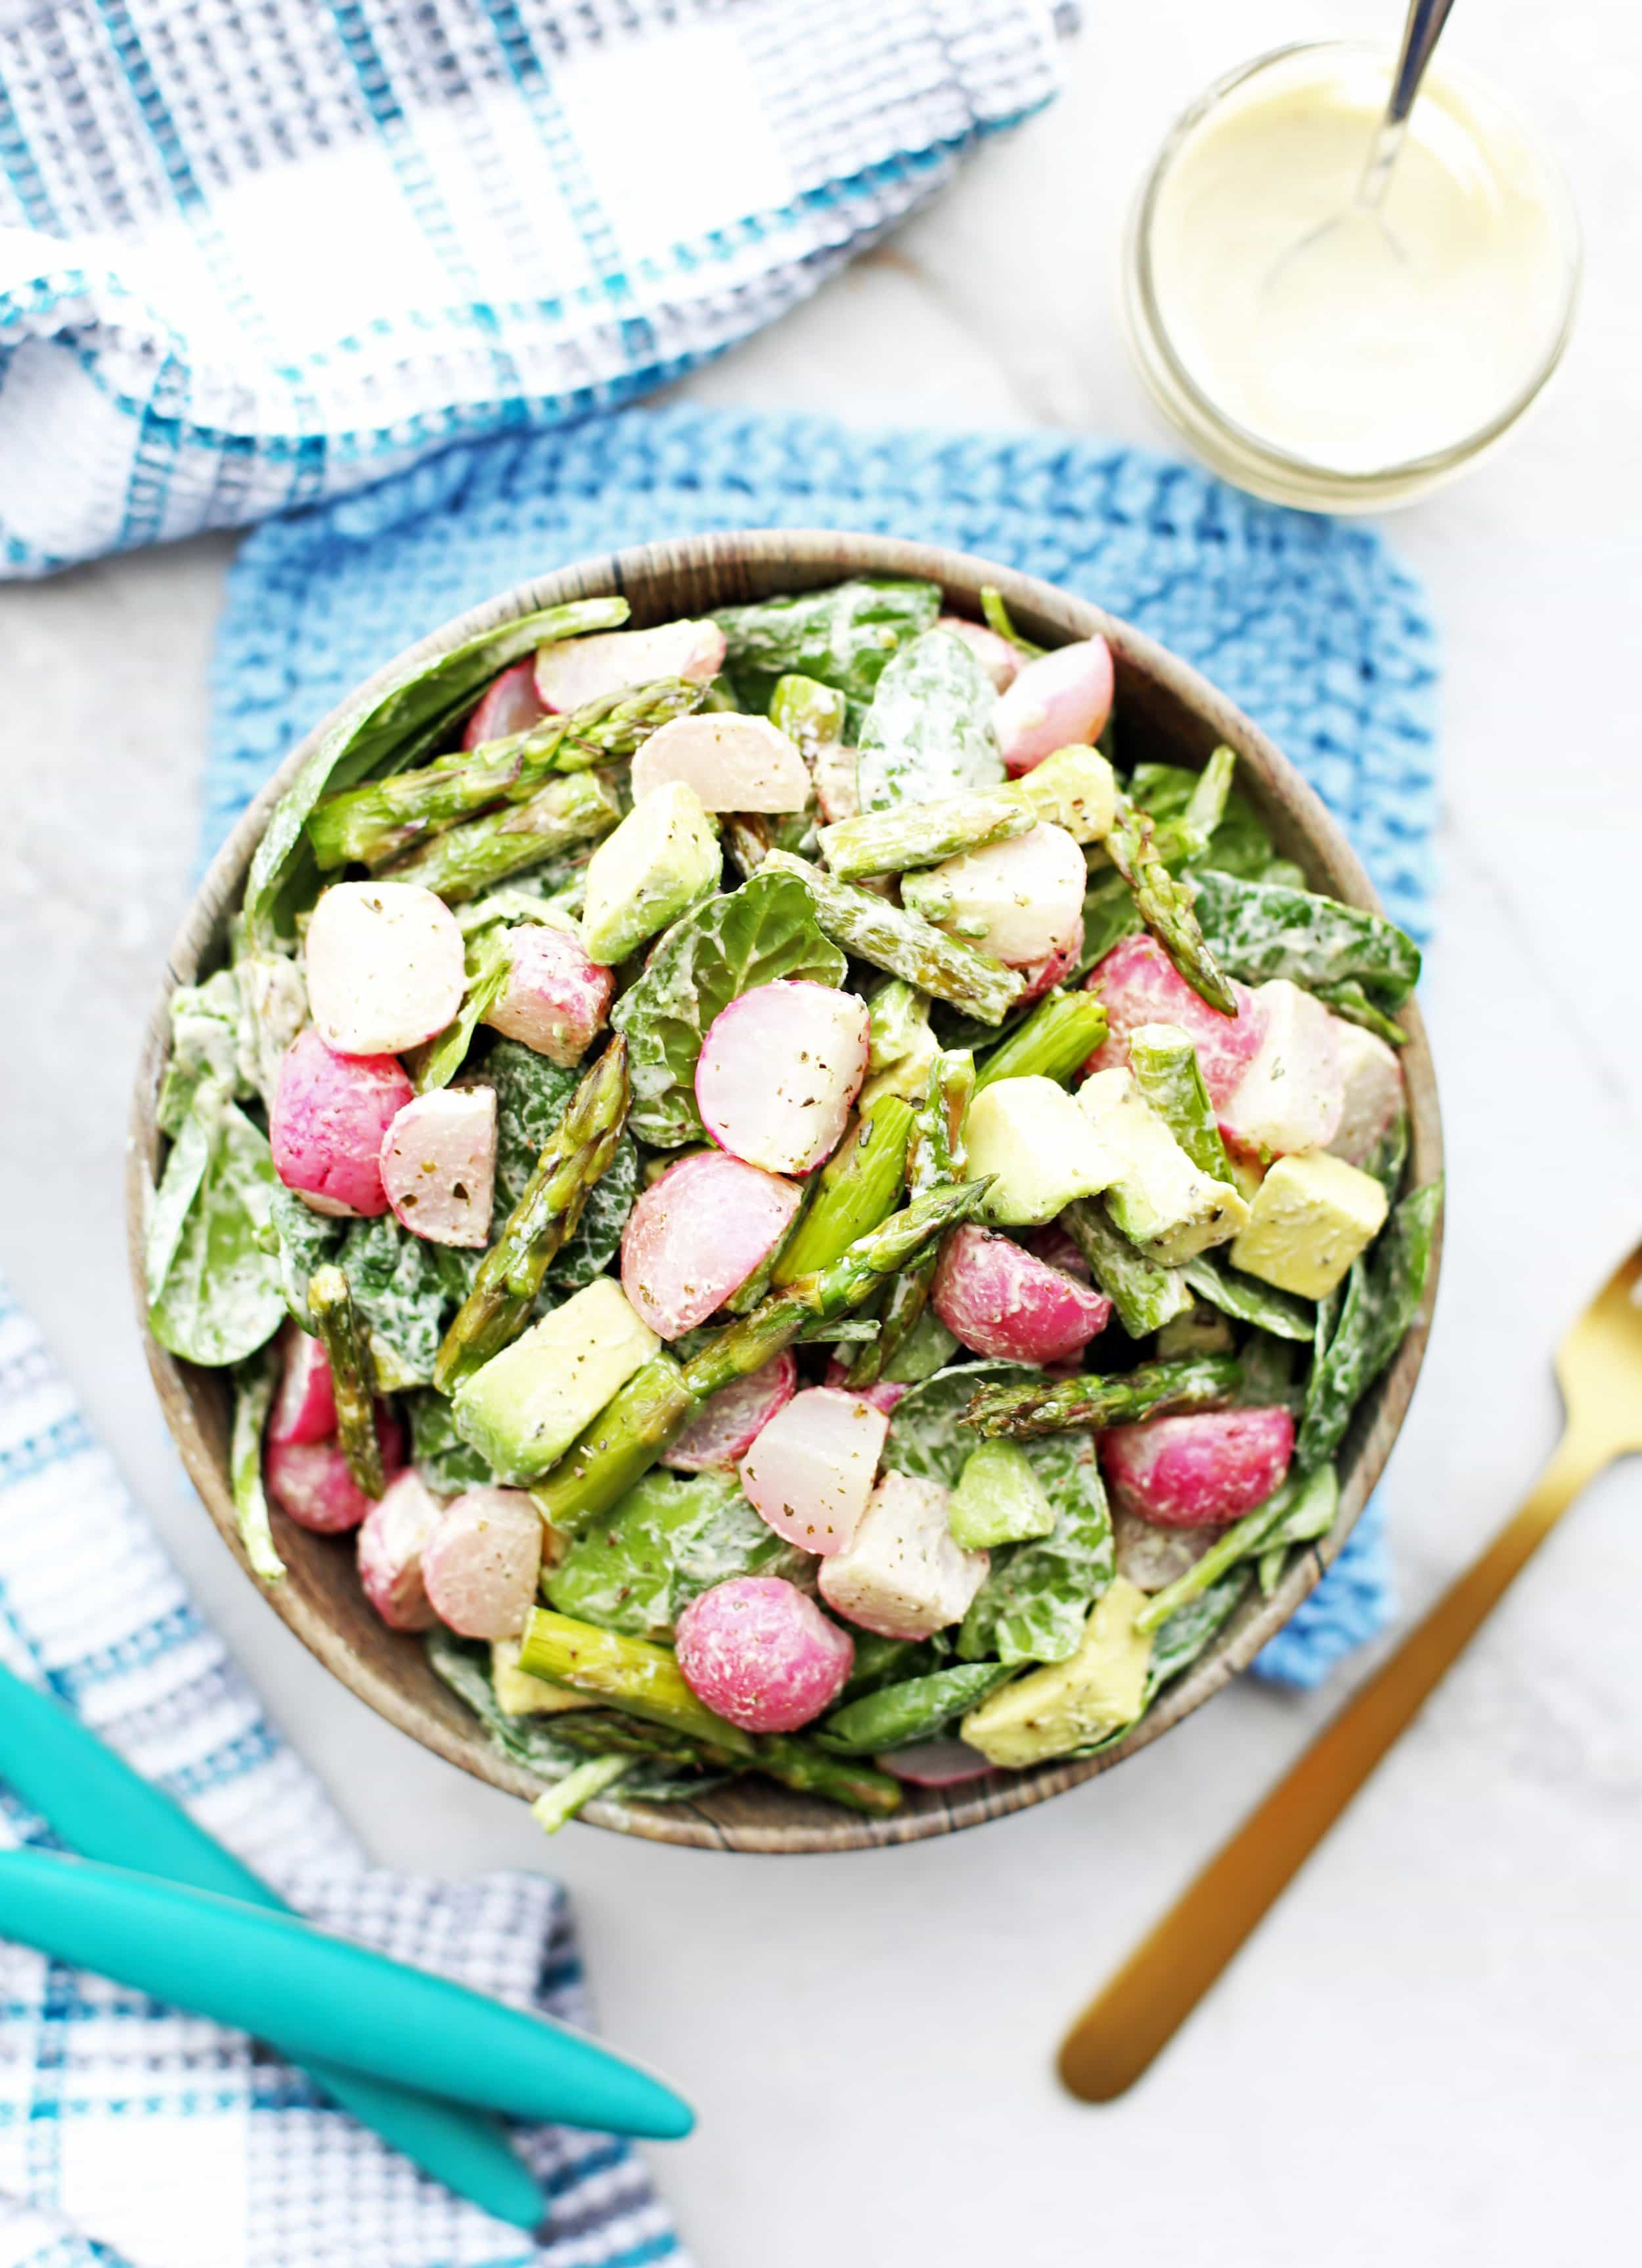 Roasted Asparagus and Radish Salad with Creamy Garlic Cashew Dressing